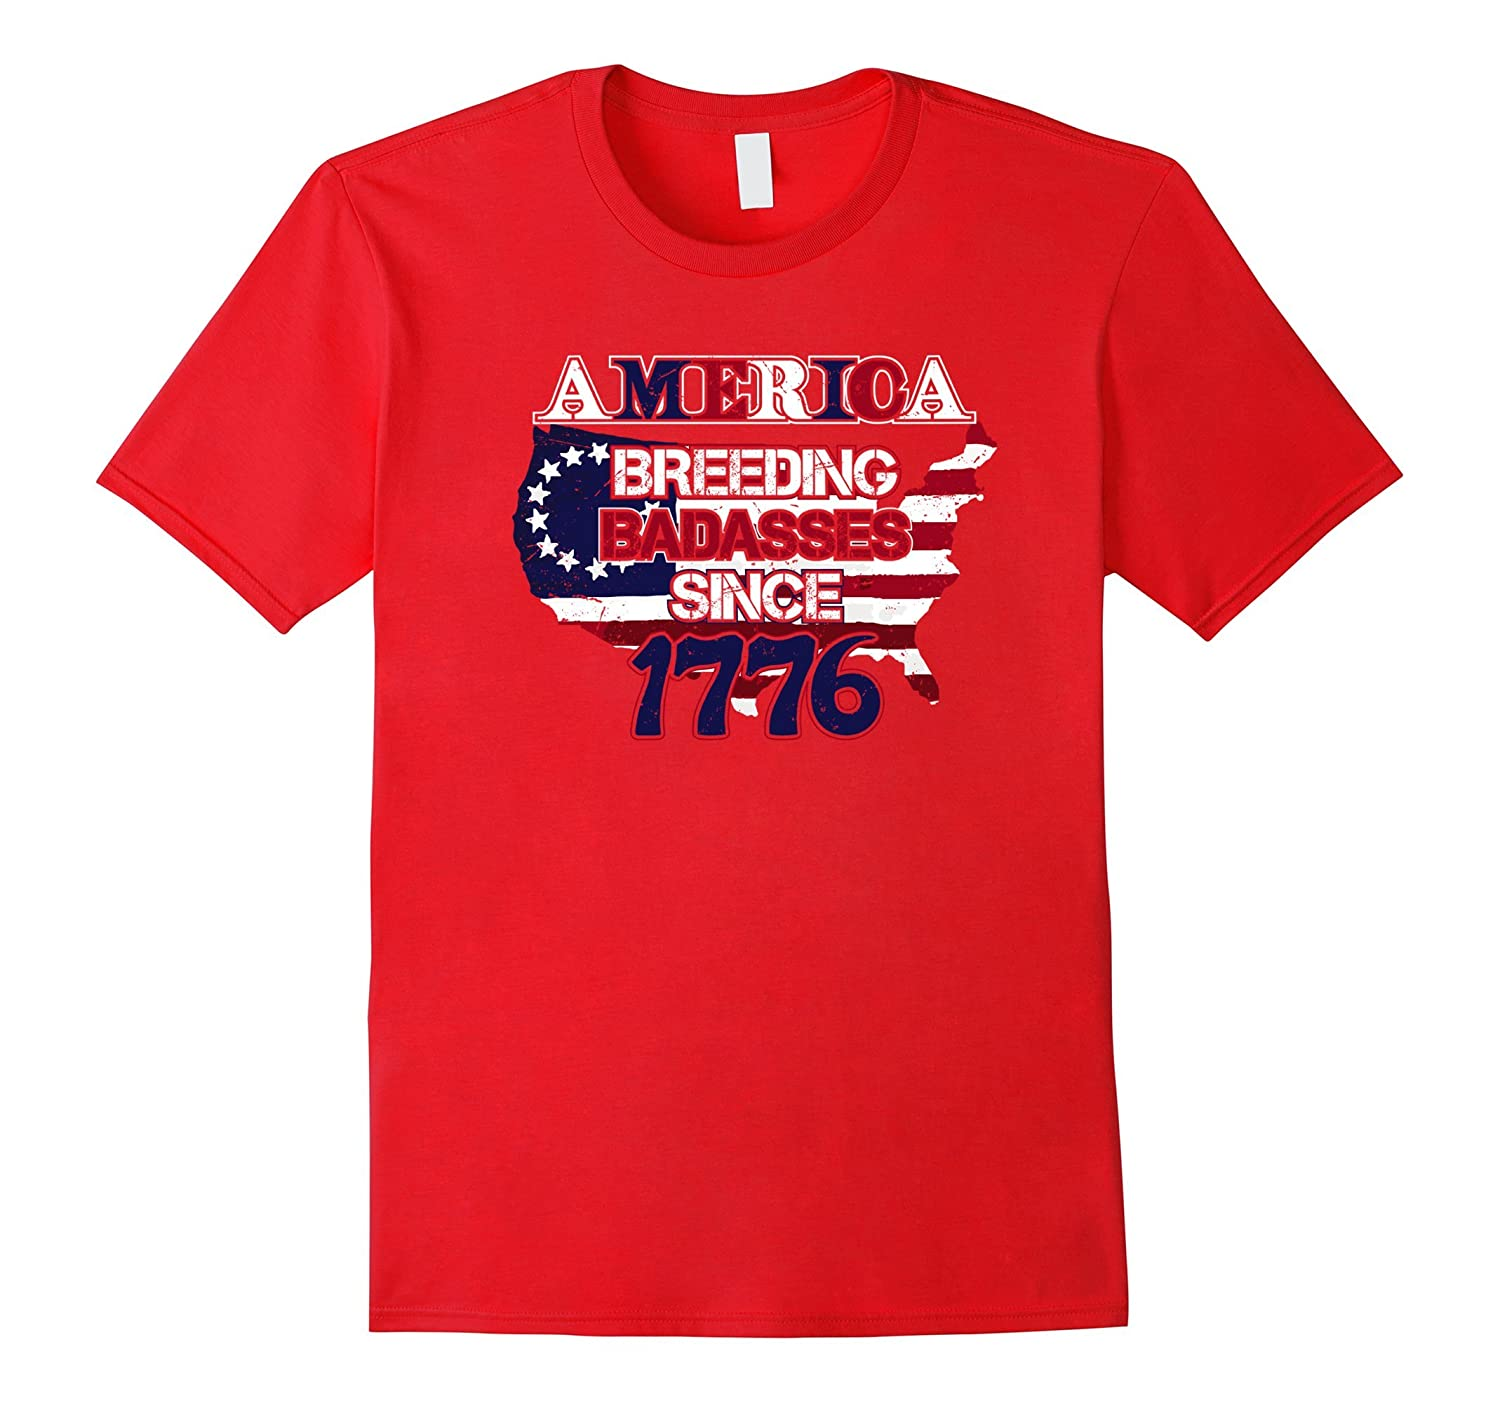 America Breeding Badasses Since 1776 Funny Patriotic Shirt-Vaci